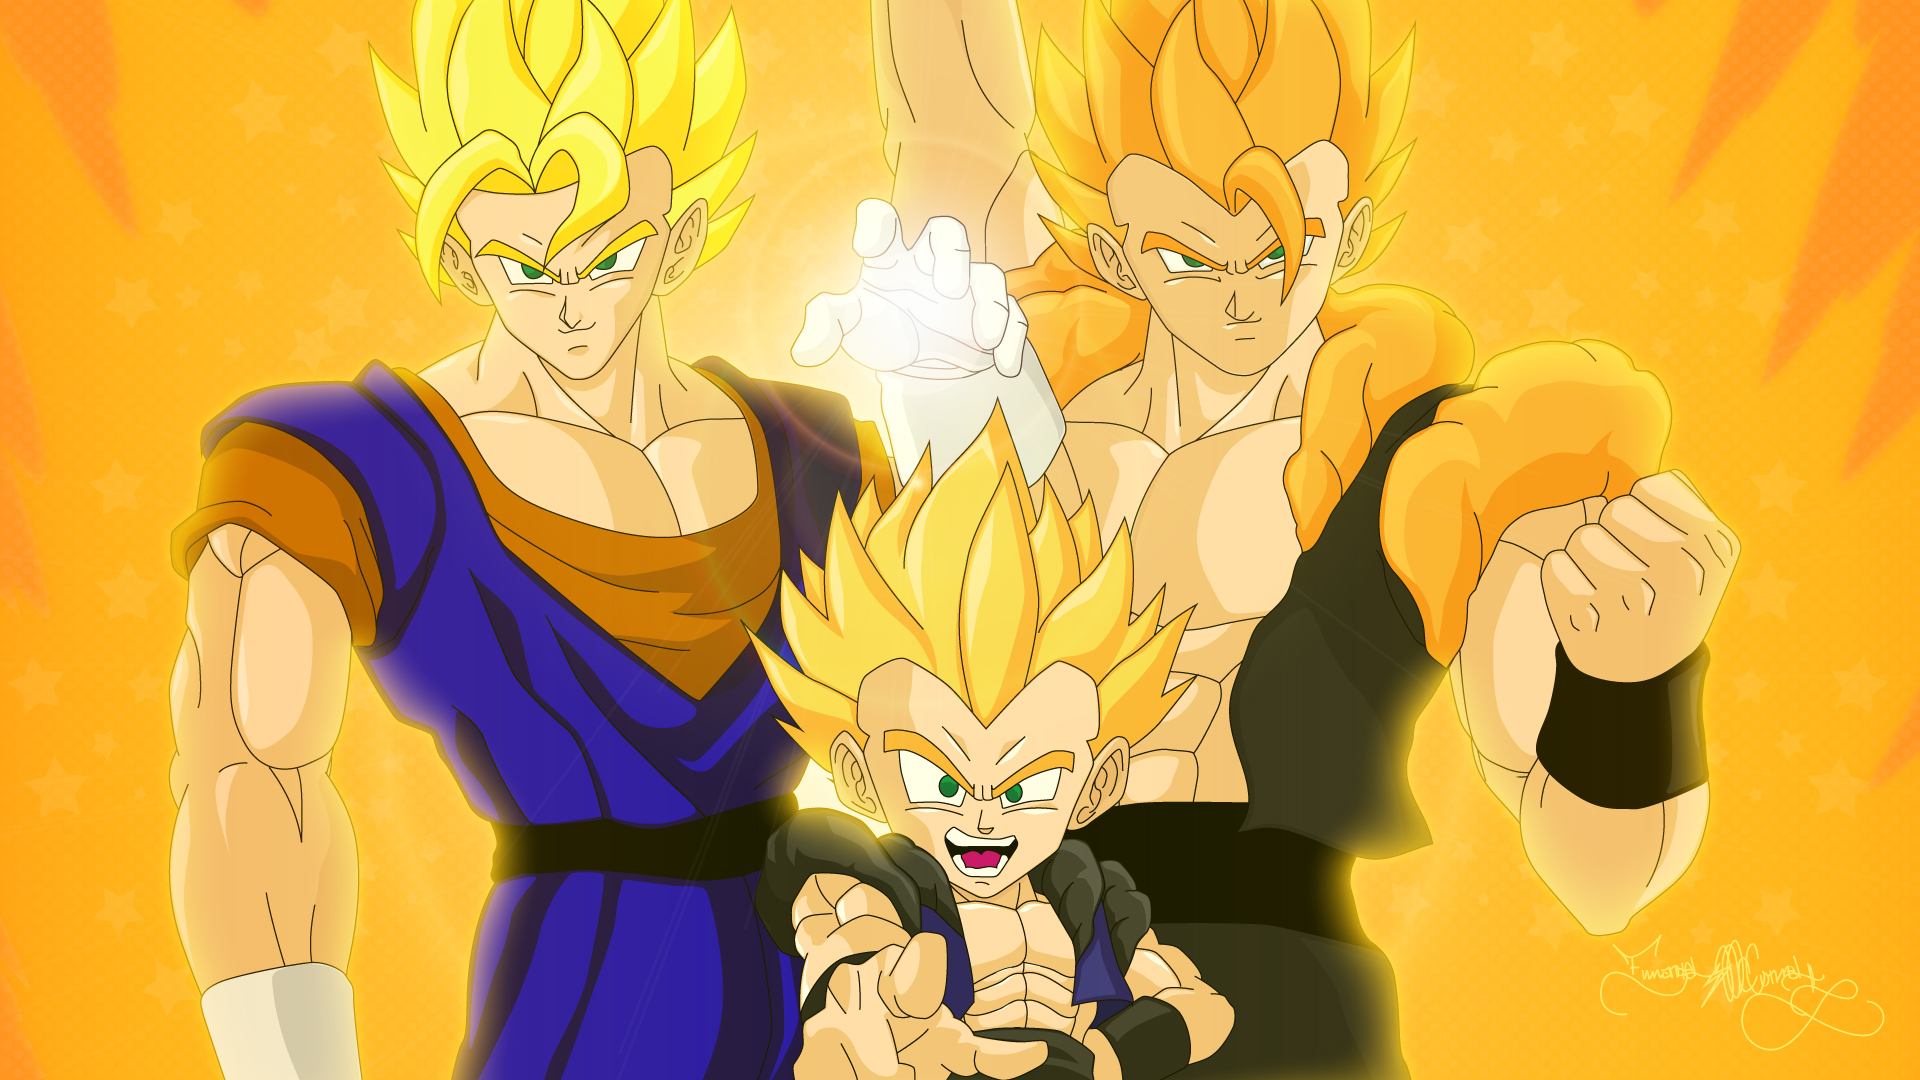 dragon ball z all fusion characters wallpaper 1113023. Black Bedroom Furniture Sets. Home Design Ideas